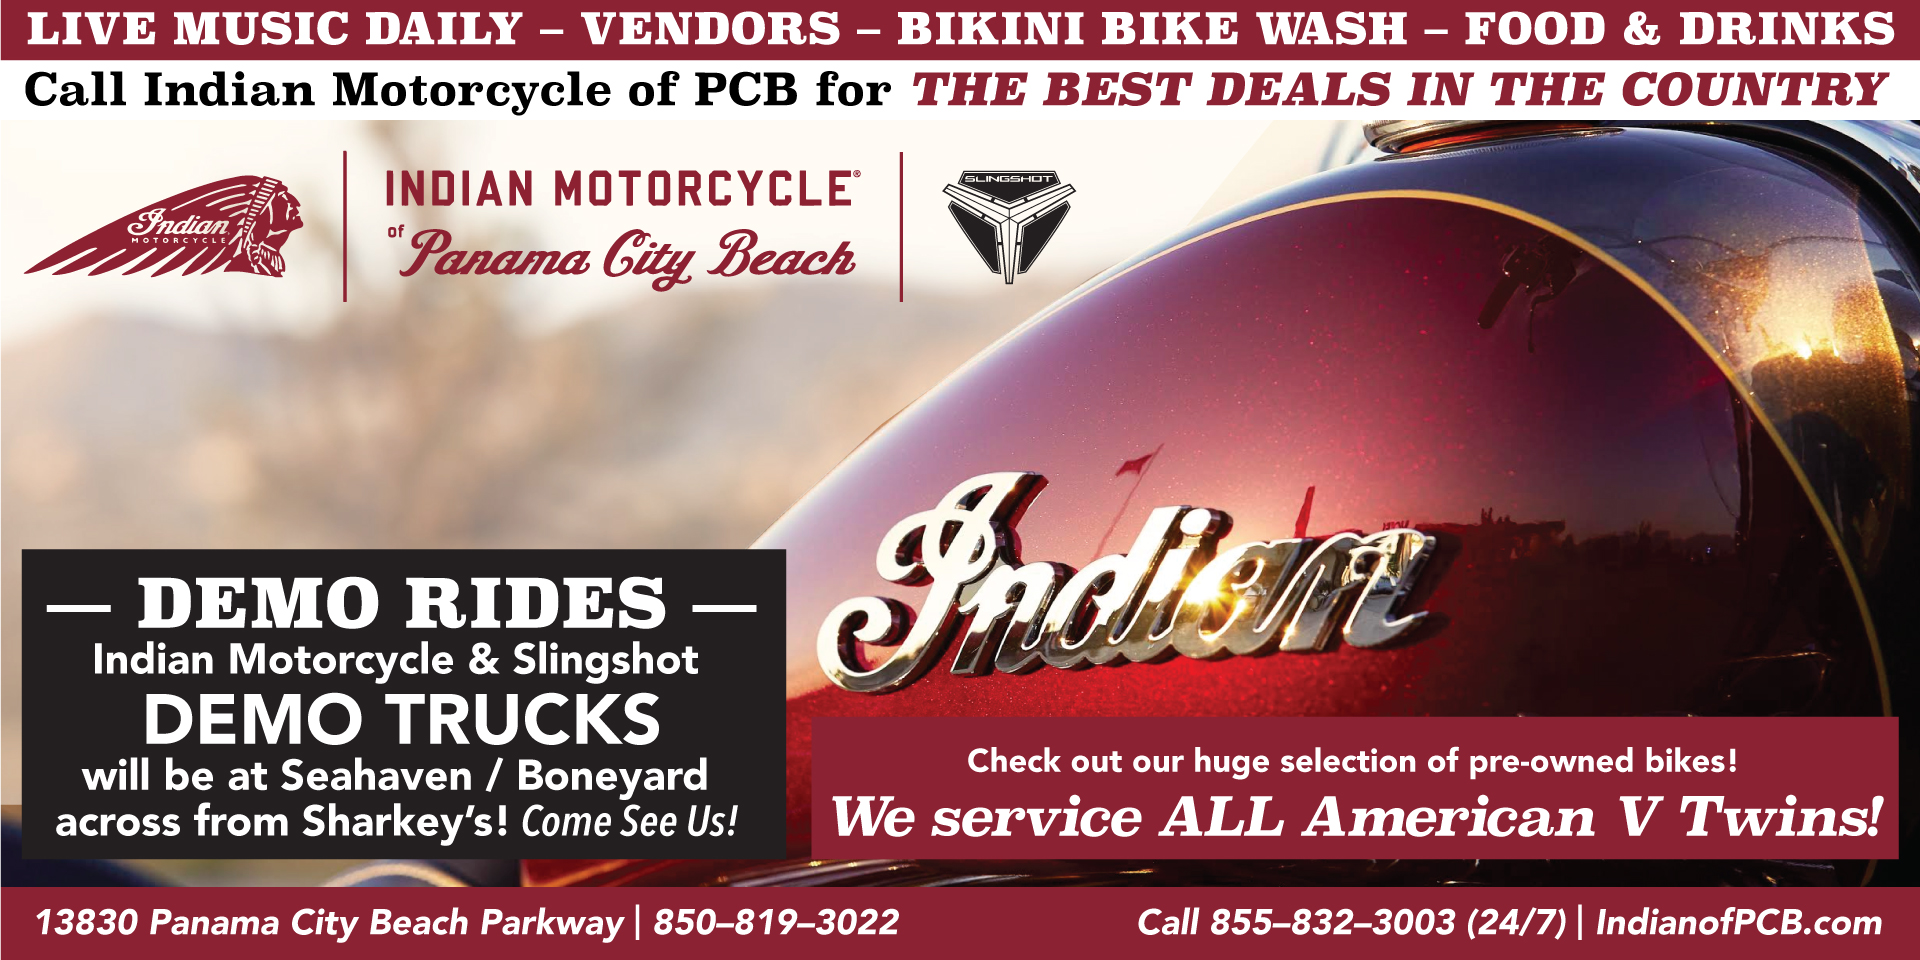 Panama City Beach Motorcycle Rally® | Indian Motorcycle of Panama City Beach